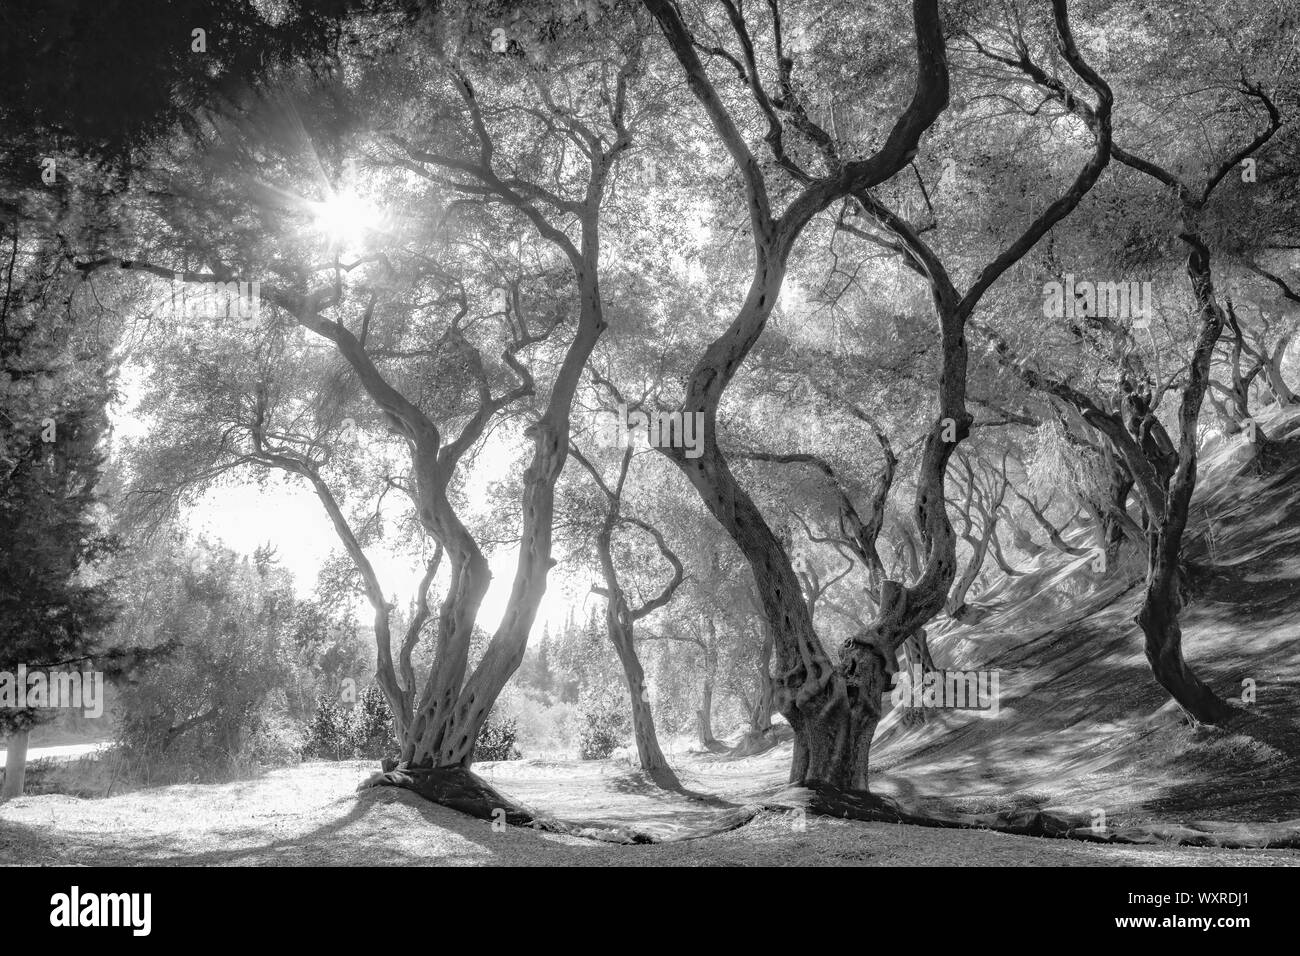 Olive grove, trees with twisted trunks, shadows and light play under the trees with dense wide-spreading crowns. Black and white photo. Stock Photo